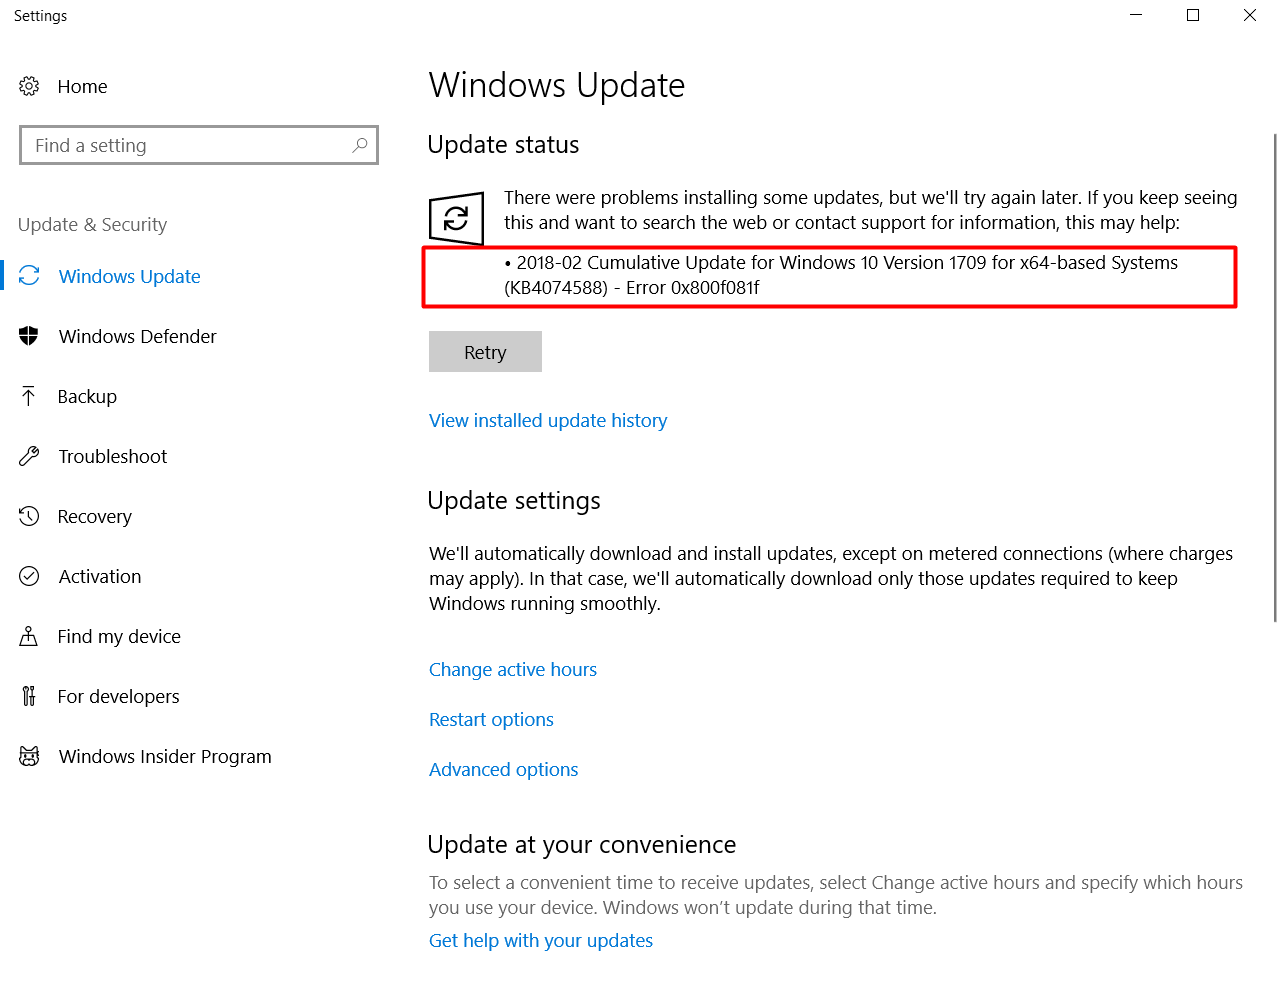 Error 0x800f081f Update For Windows 10 Version 1709 for x64-based Systems (KB4074588)